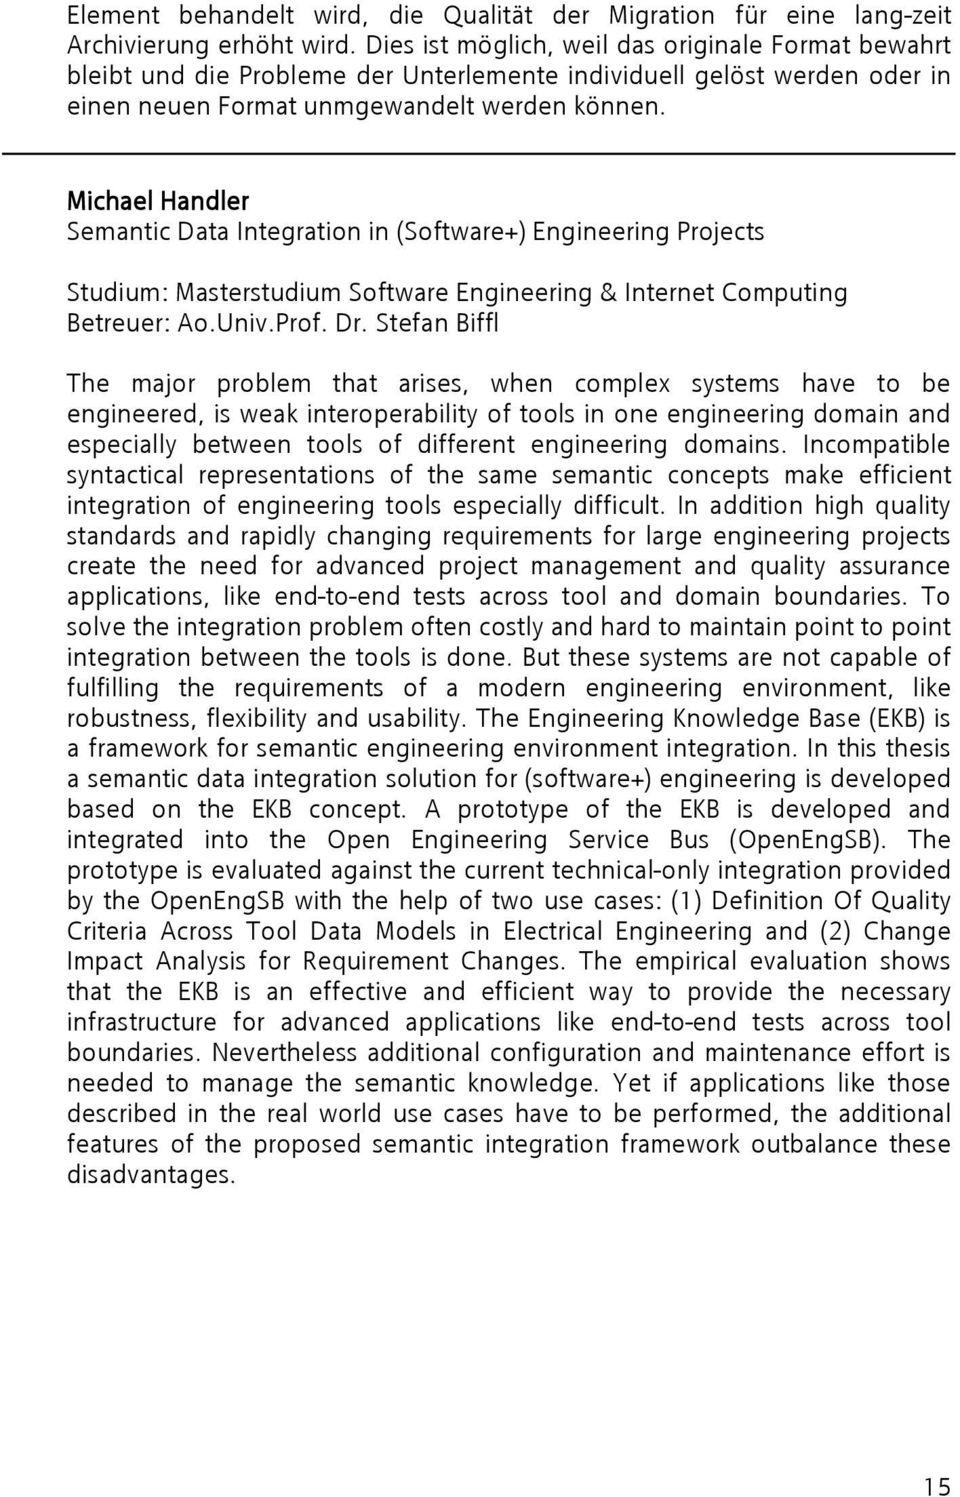 Michael Handler Semantic Data Integration in (Software+) Engineering Projects Studium: Masterstudium Software Engineering & Internet Computing Betreuer: Ao.Univ.Prof. Dr.